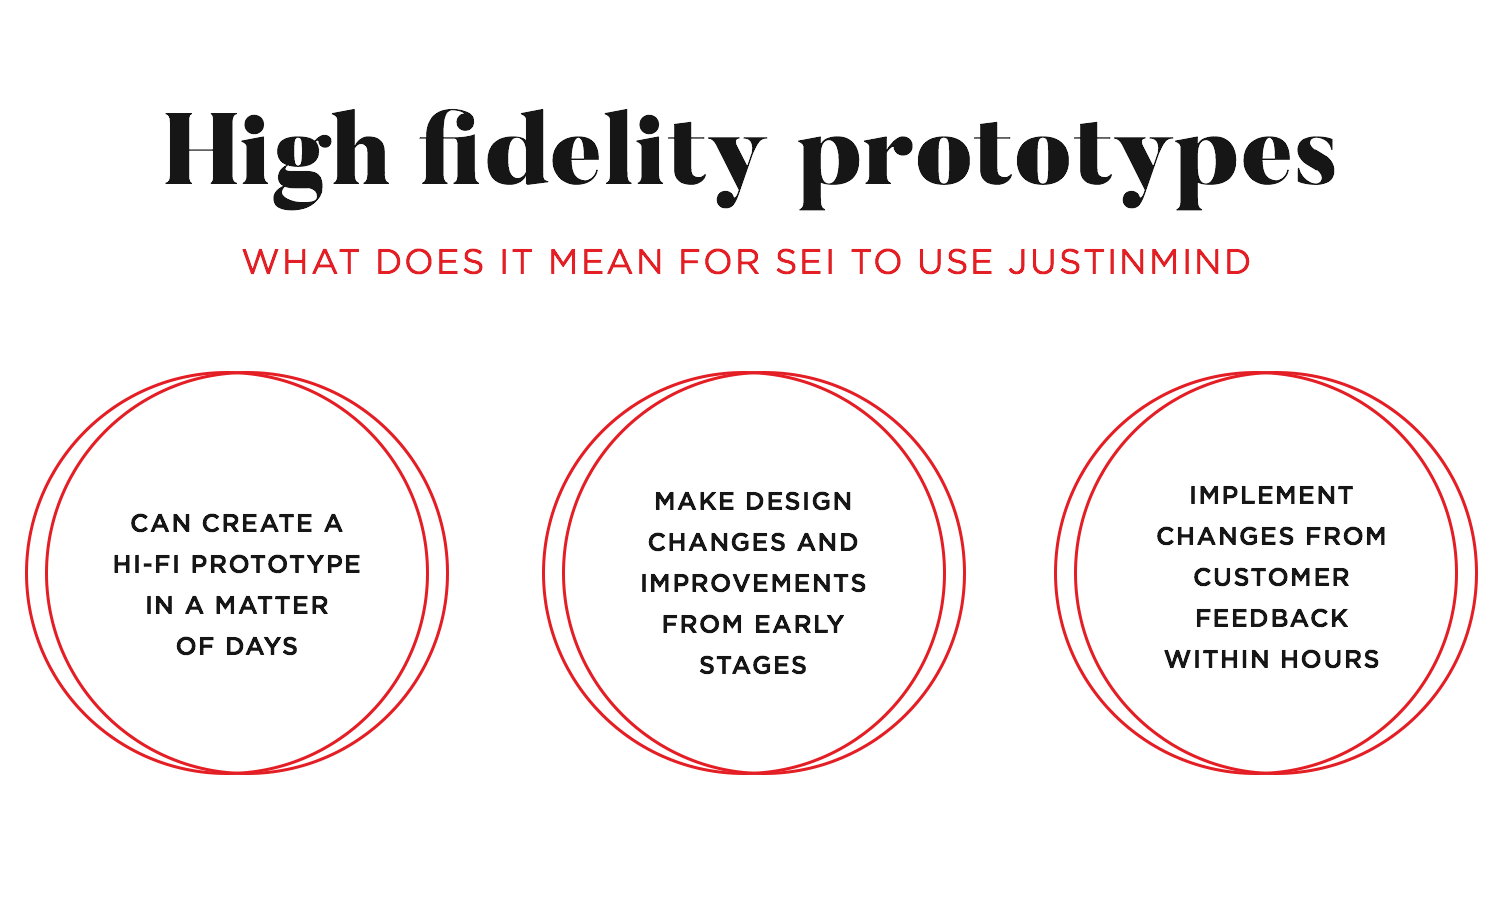 the role that high fidelity prototyping plays at SEI